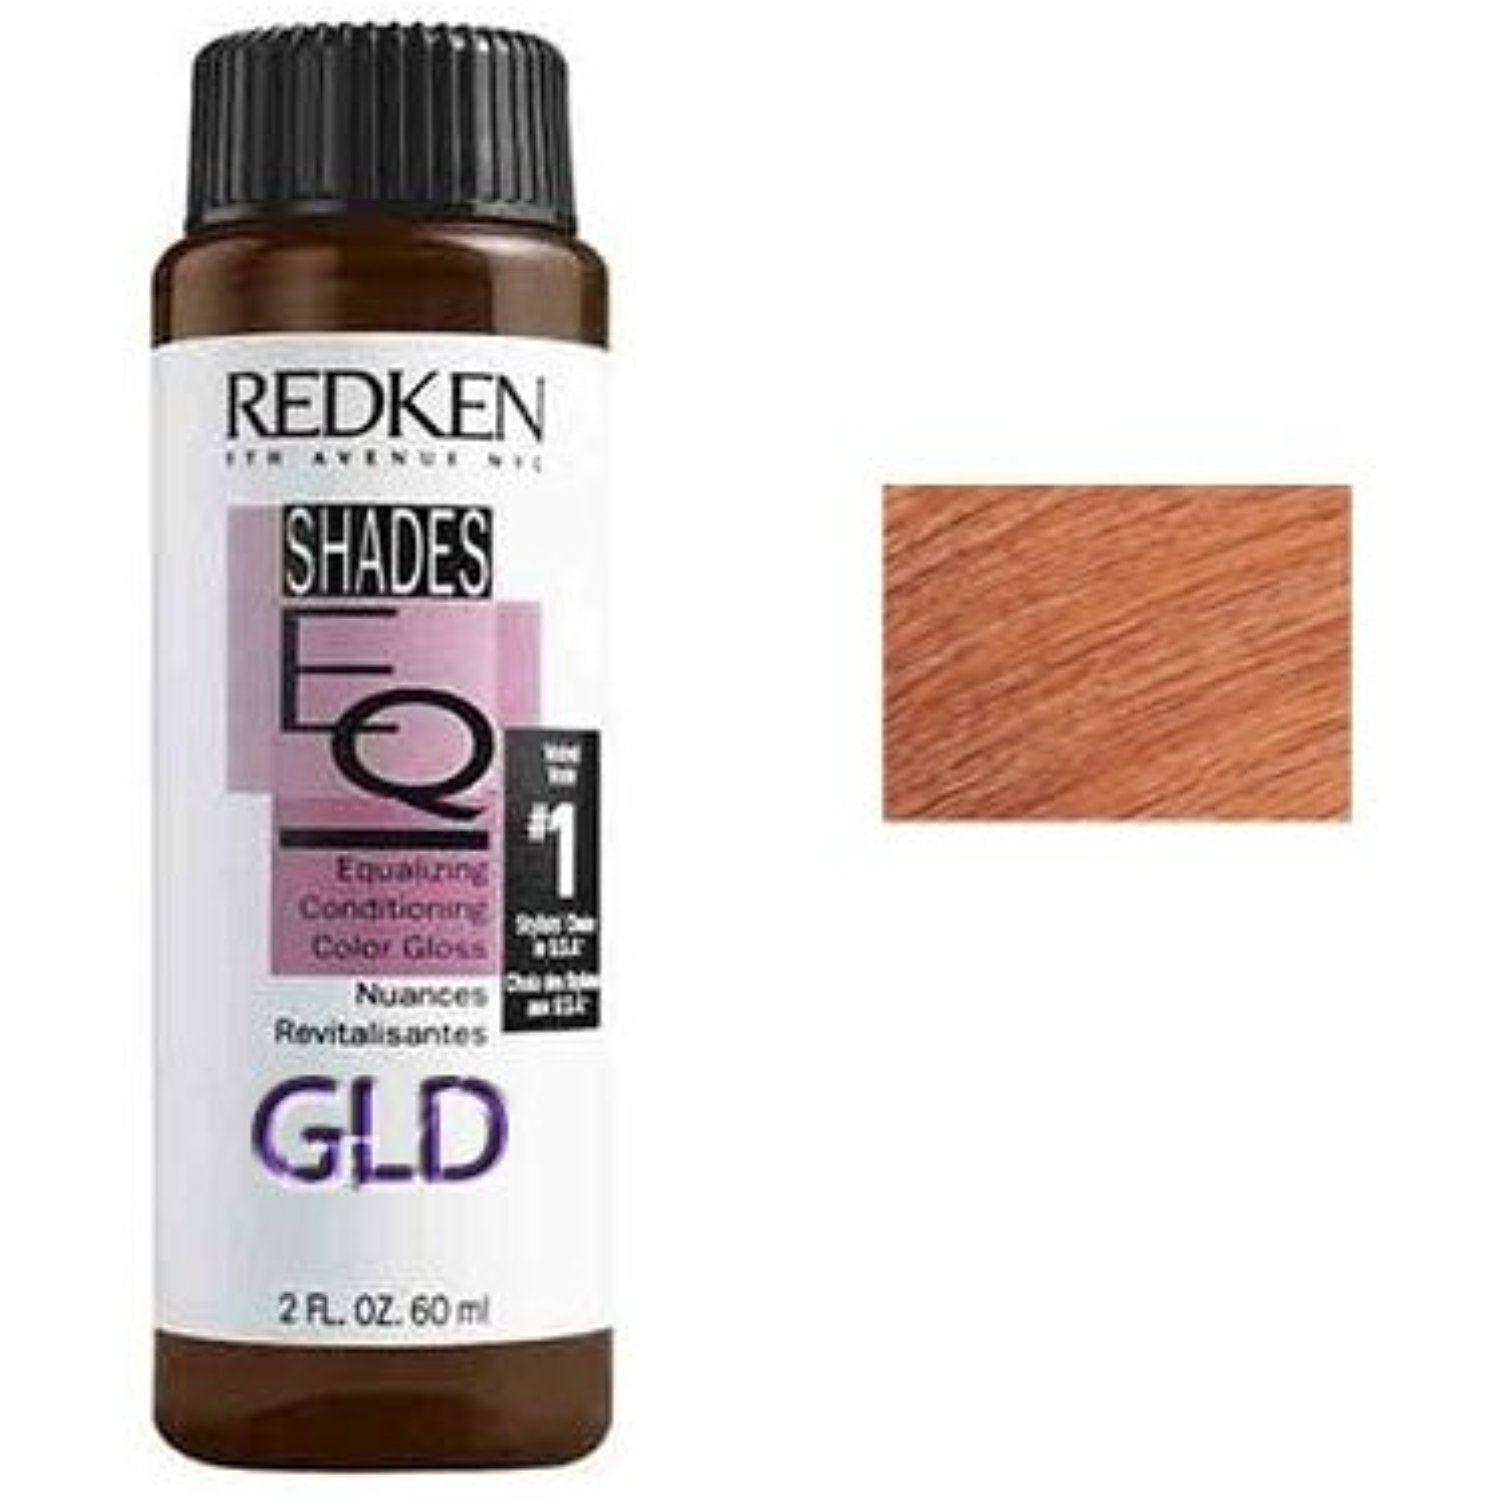 Redken Shades Eq 9aa Papaya 2oz Click On The Image For Additional